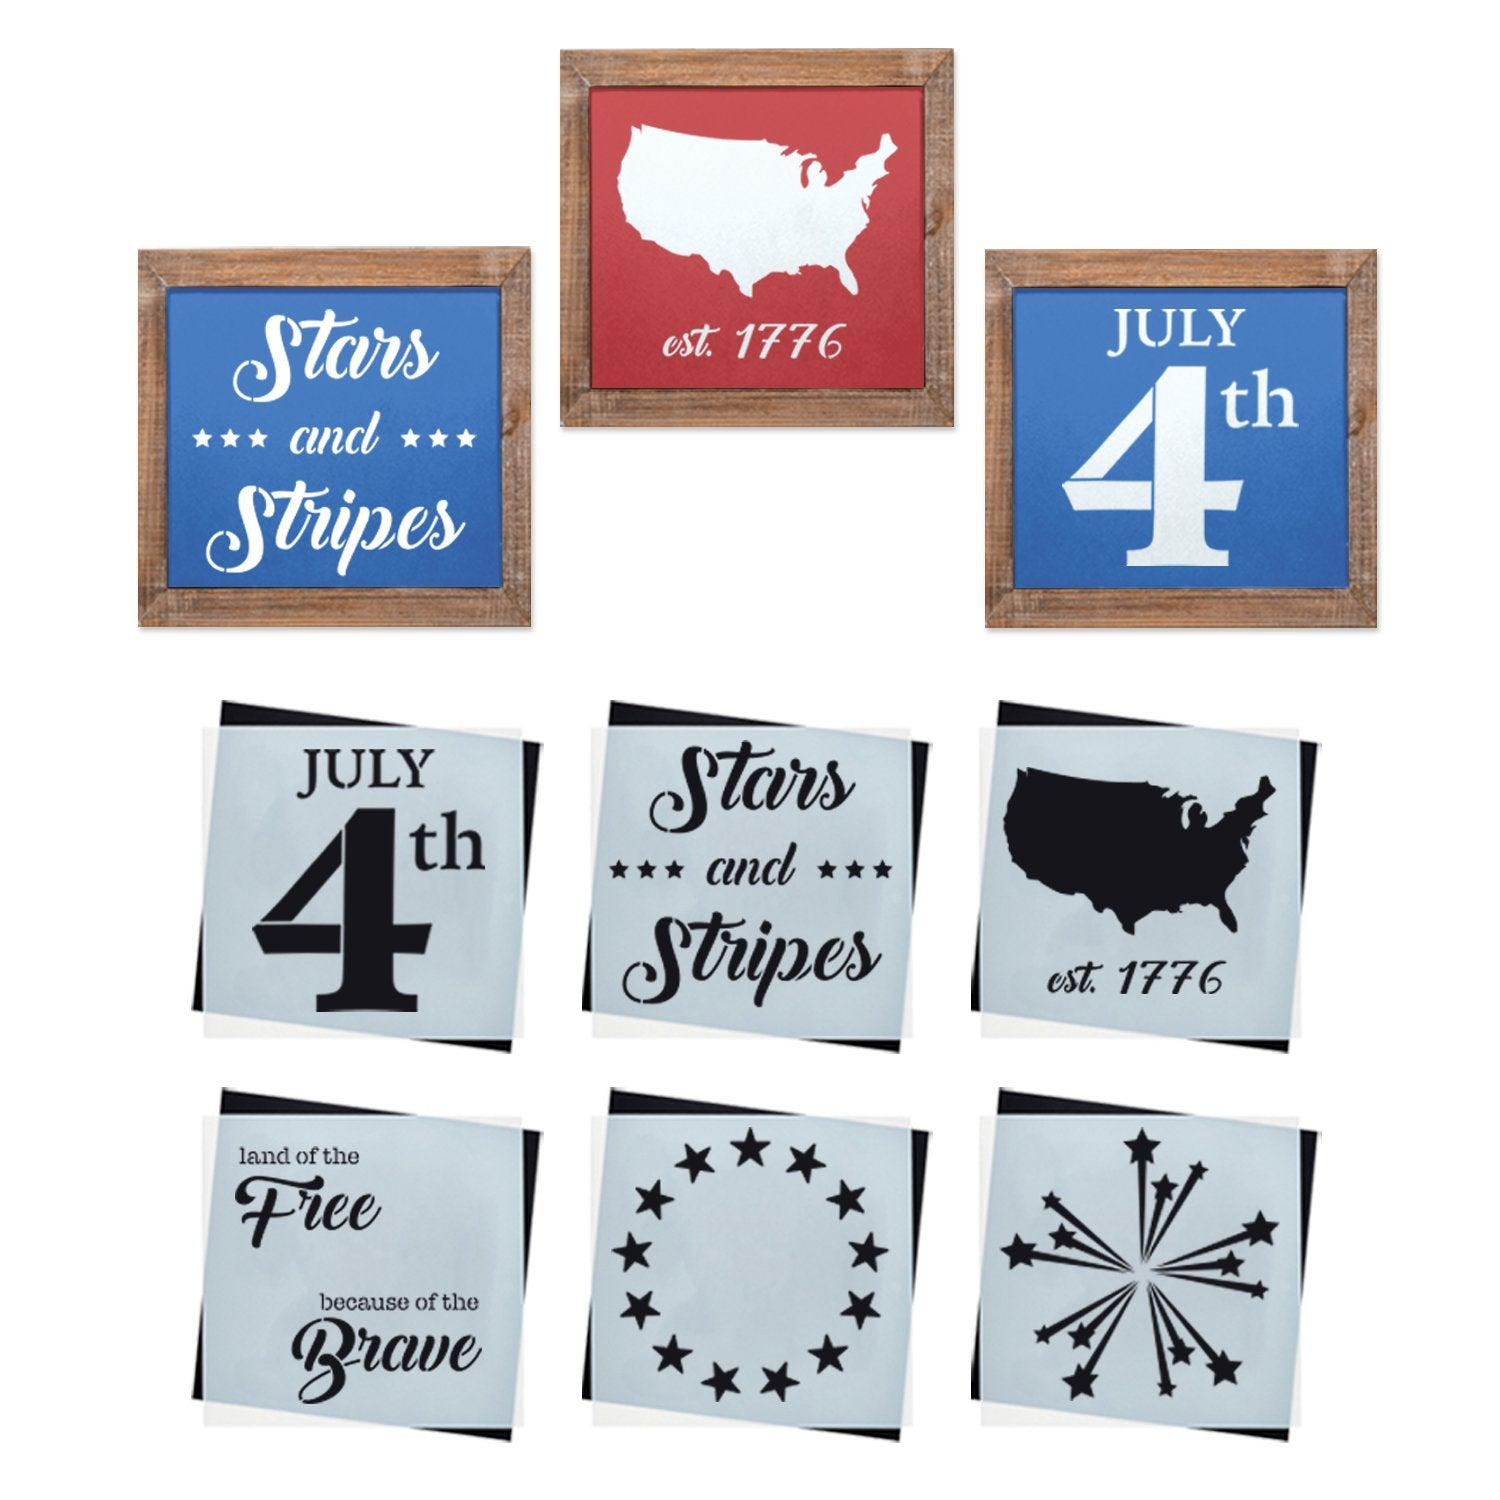 Reusable Patriotic sign stencils for painting on wood, DIY 4th of July home decor, July 4th, Stars and stripes, USA, United States silhouette, Betsy ross 13 star, land of the free because of the brave stencil